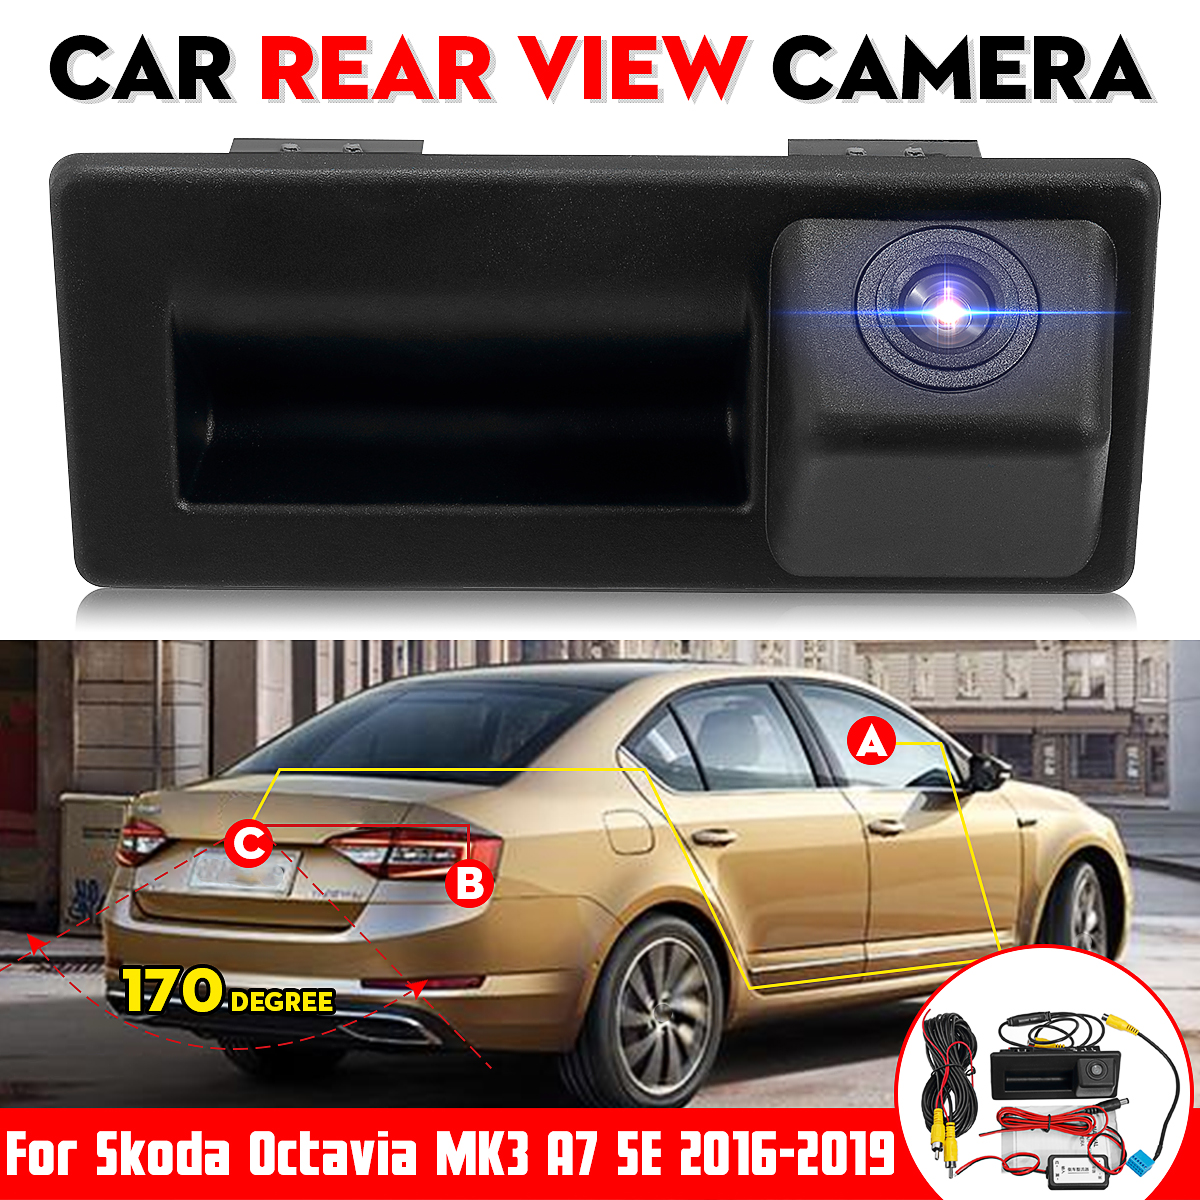 Rear Trunk Tailgate Back Door Handle Rear View Backup Camera HD For Skoda Octavia MK3 A7 5E 2014 2015 2016 2017 2018 Superb 3